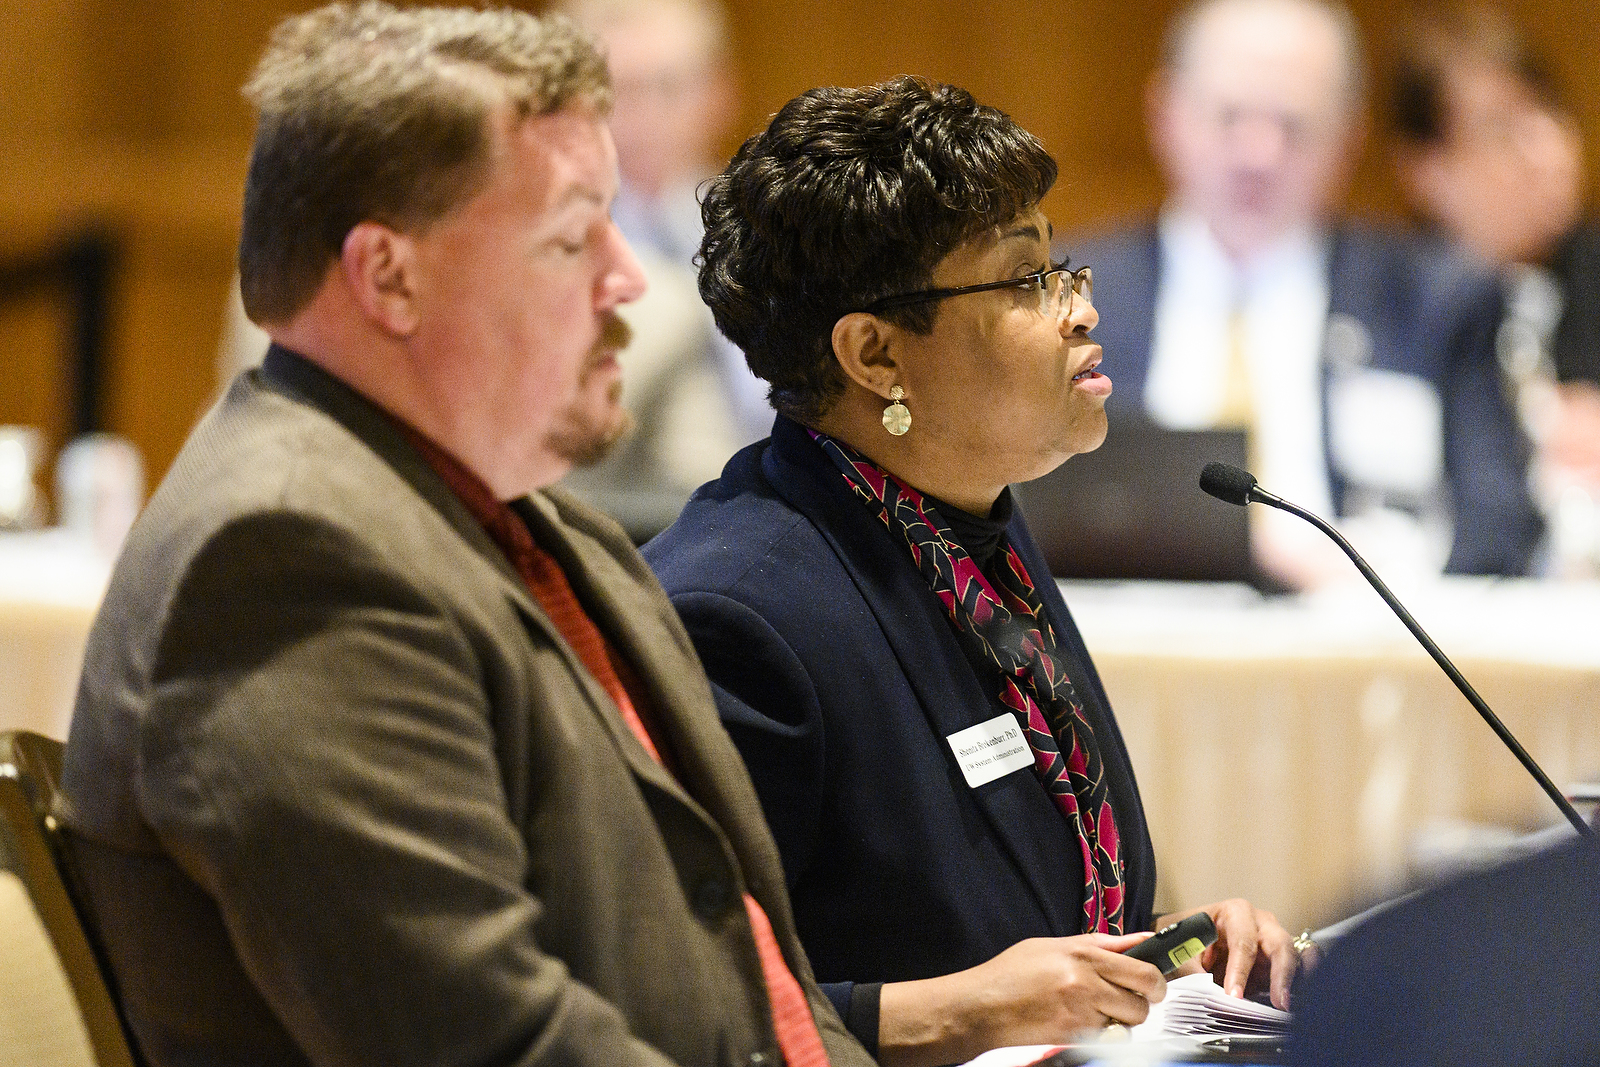 UW System Senior Associate Vice President and Resource Officer Shenita Brokenburr presents a report from the Sexual Violence and Harassment Priorities Working Group at the UW System Board of Regents meeting hosted at Union South at the University of Wisconsin-Madison on Feb. 7, 2019. (Photo by Bryce Richter /UW-Madison)